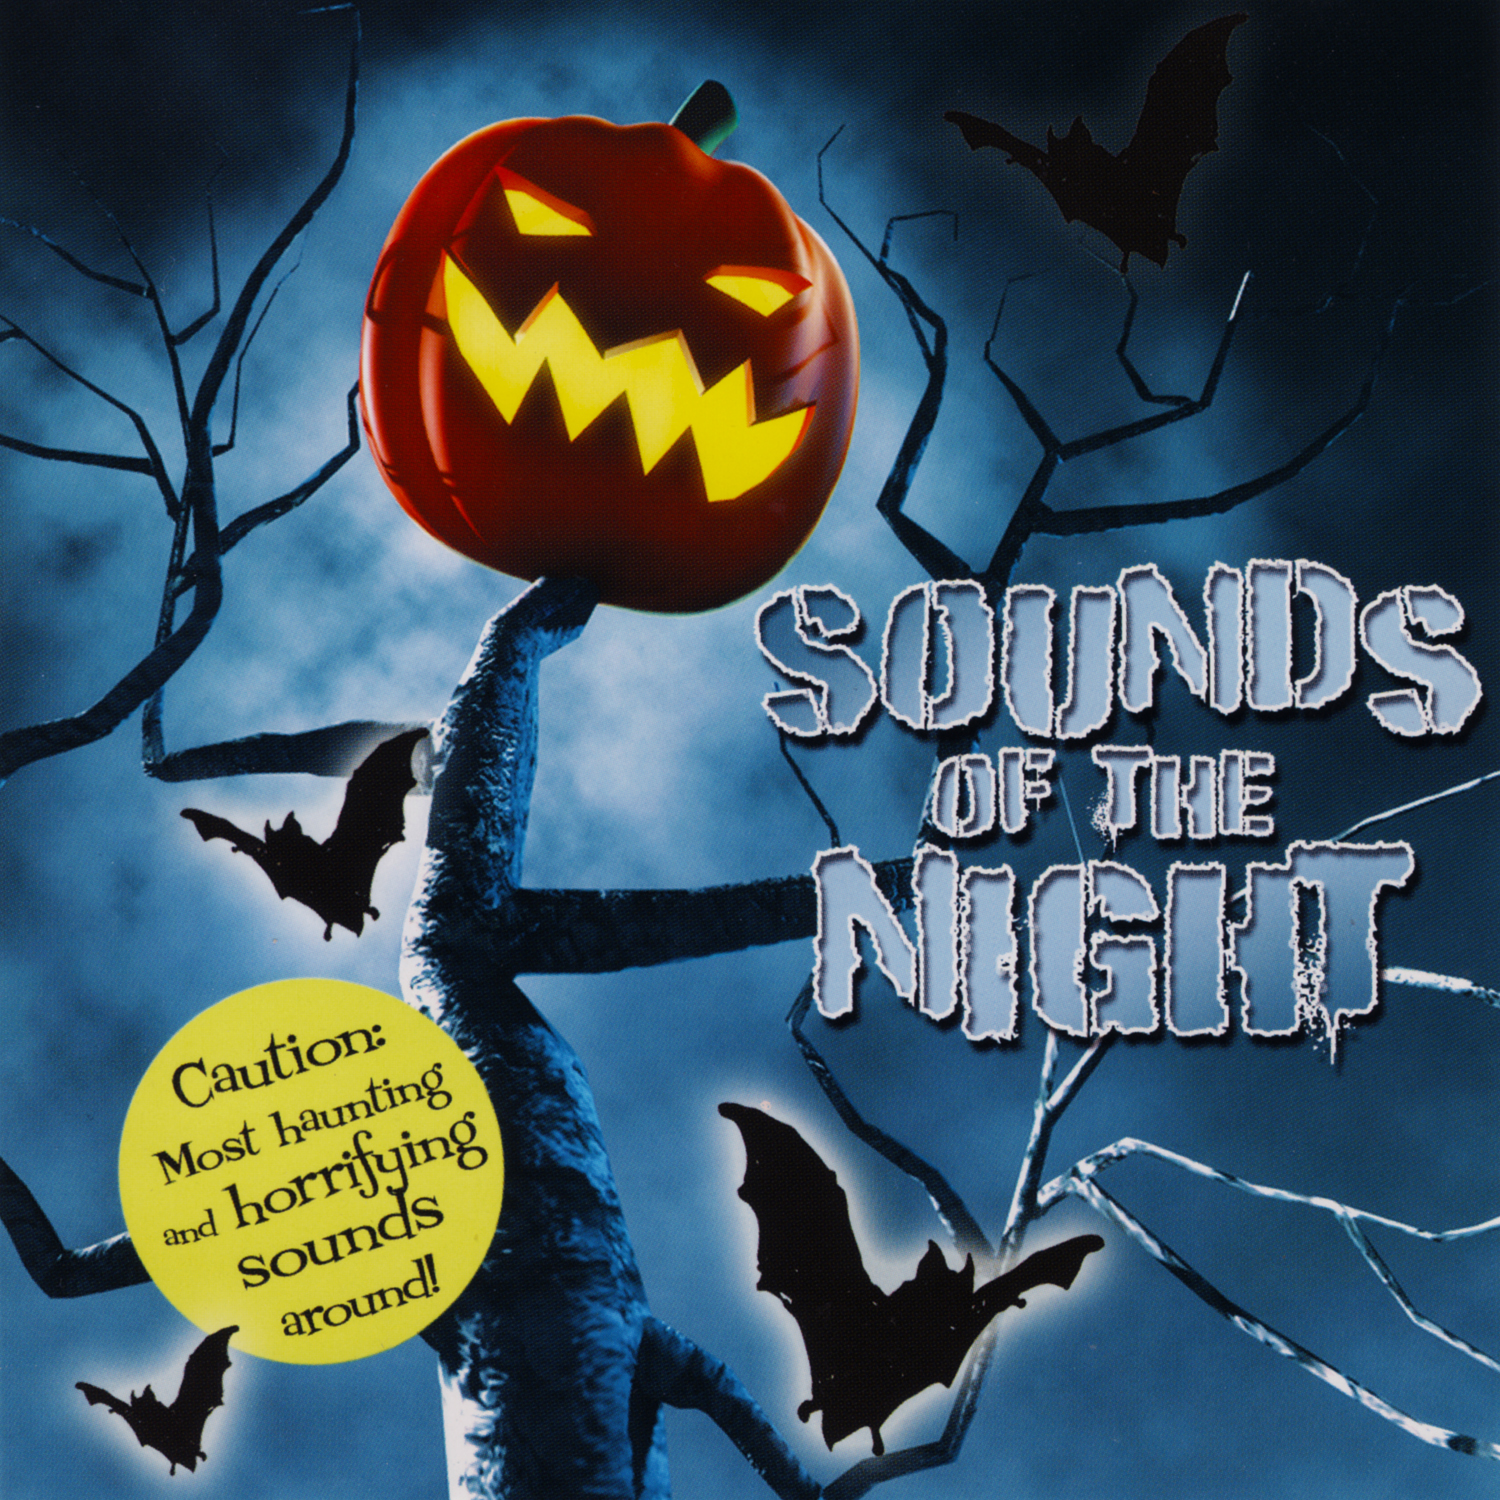 sounds of the night year 2008 catalog cd 64 length 70 minutes tracks 12 mp3 information bit rate 320kbps cbr file size 158mb - Free Halloween Sounds Mp3